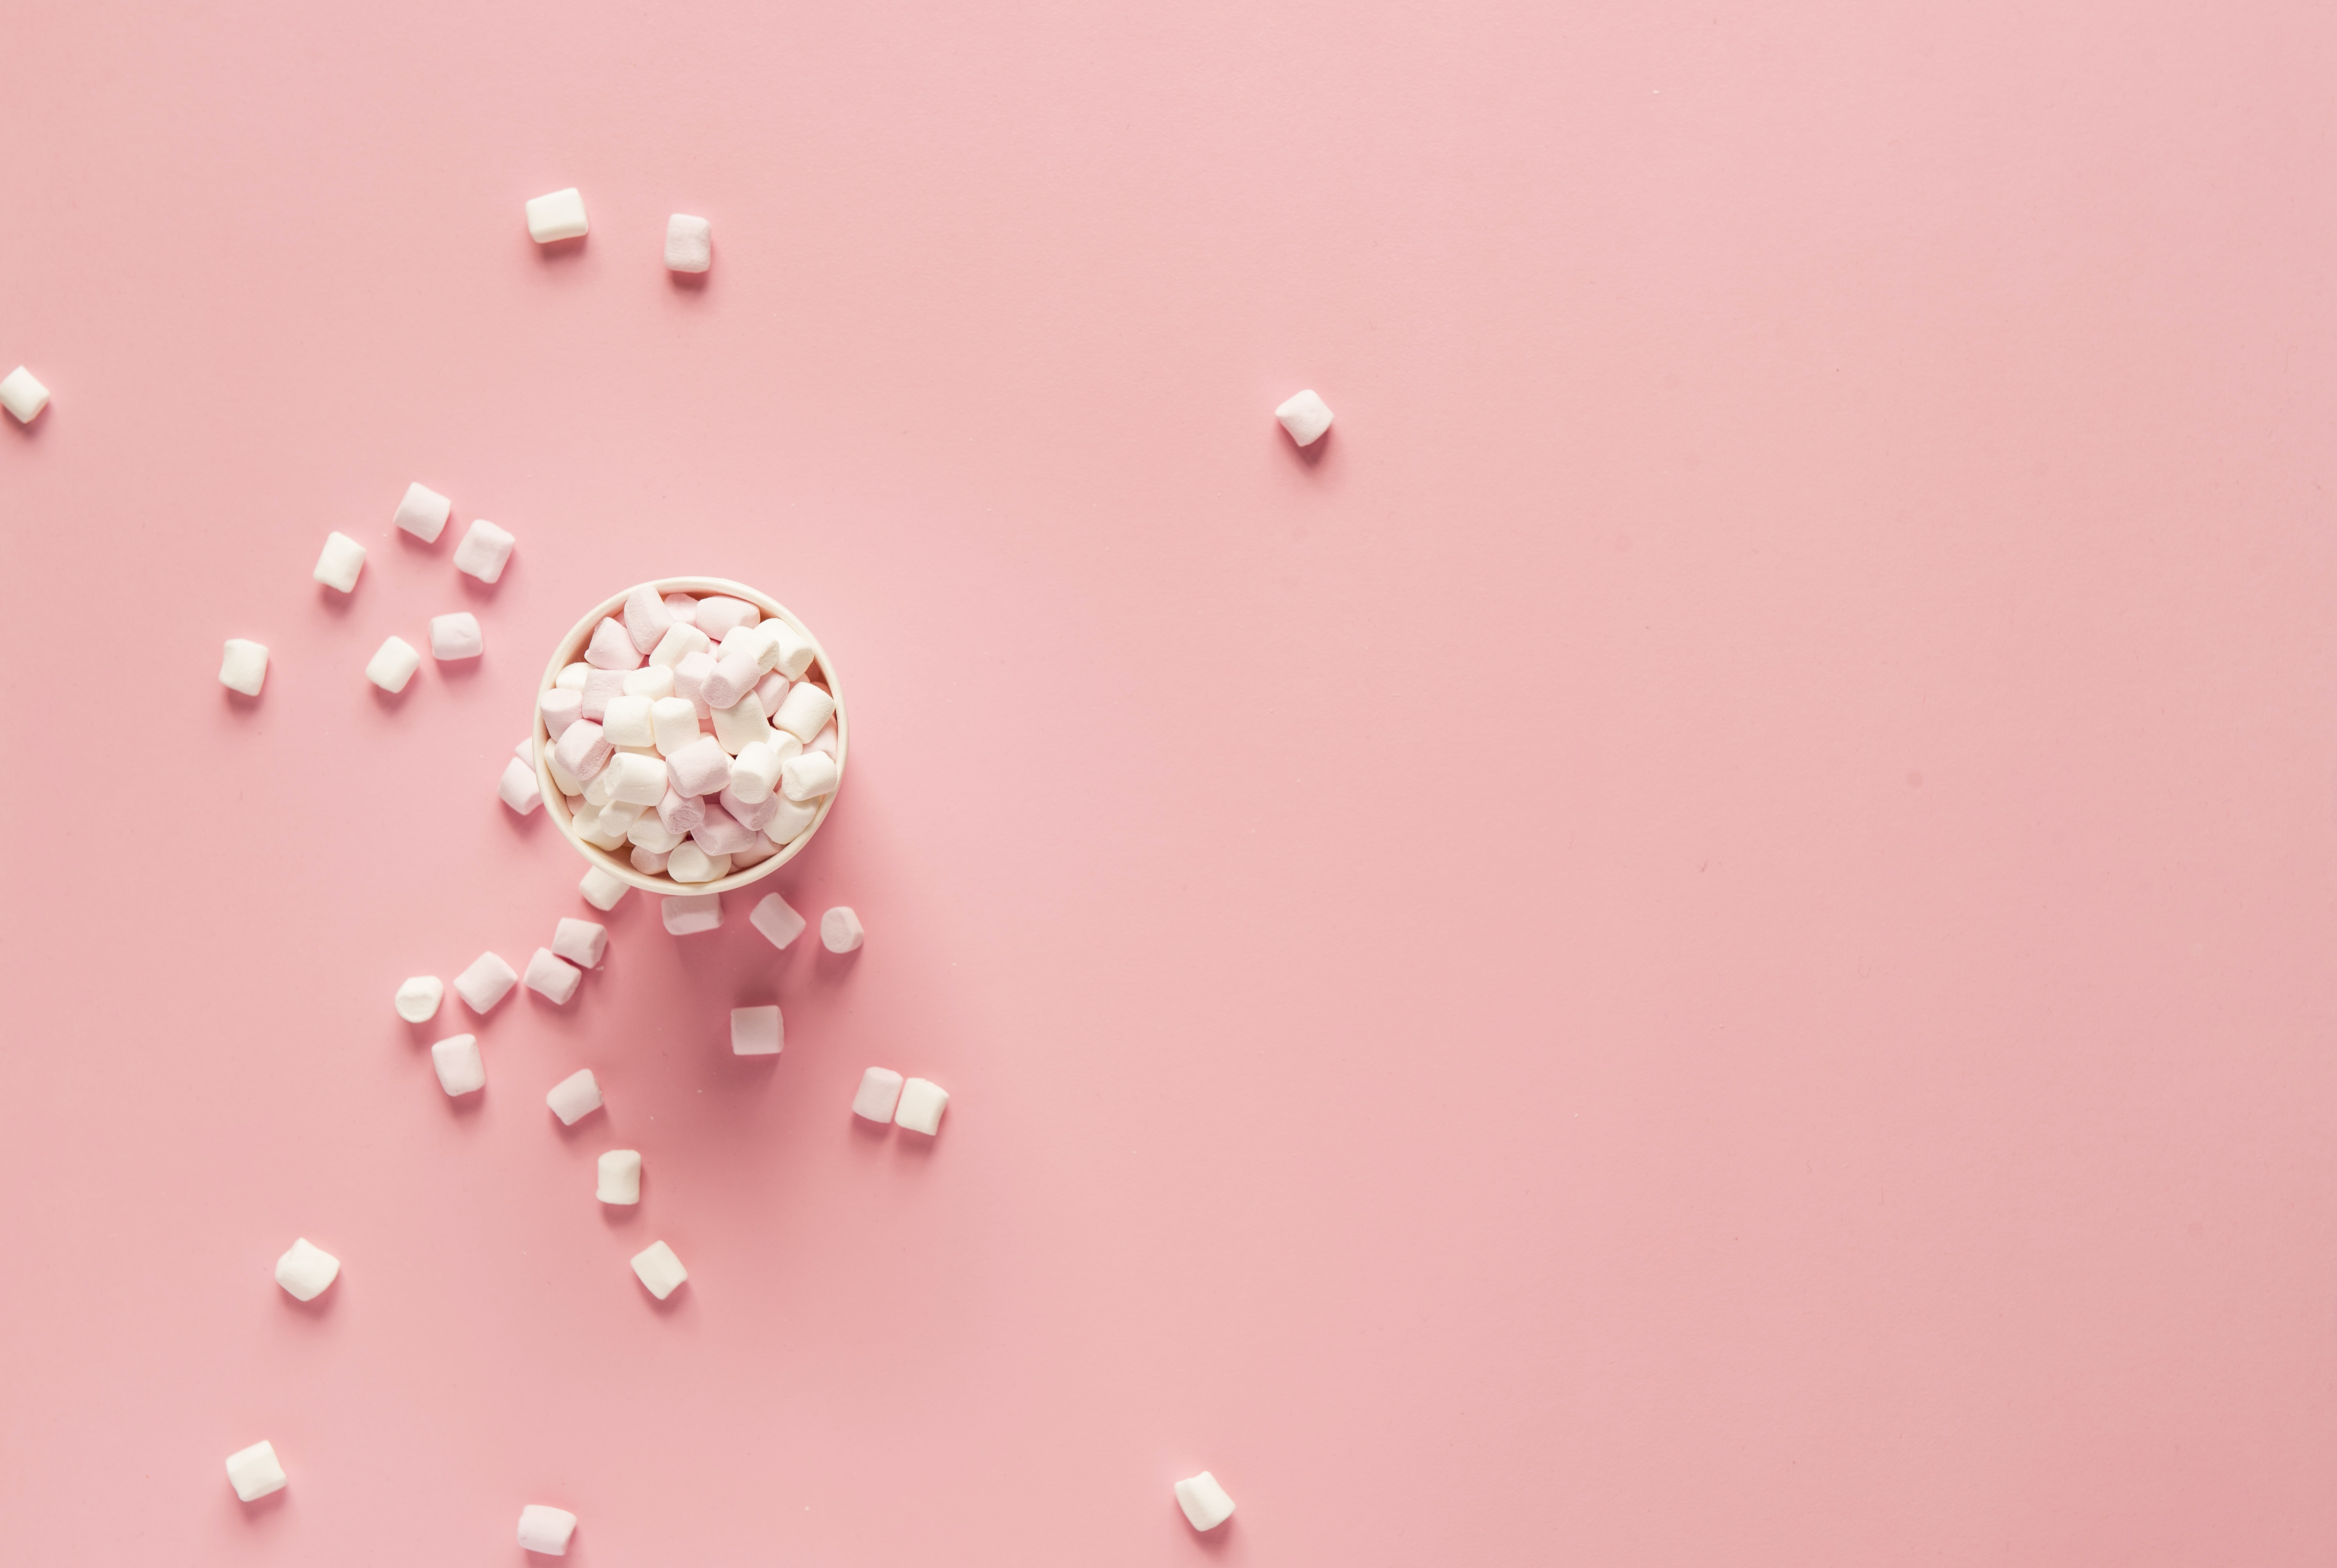 bunch of marshmallows on pink surface